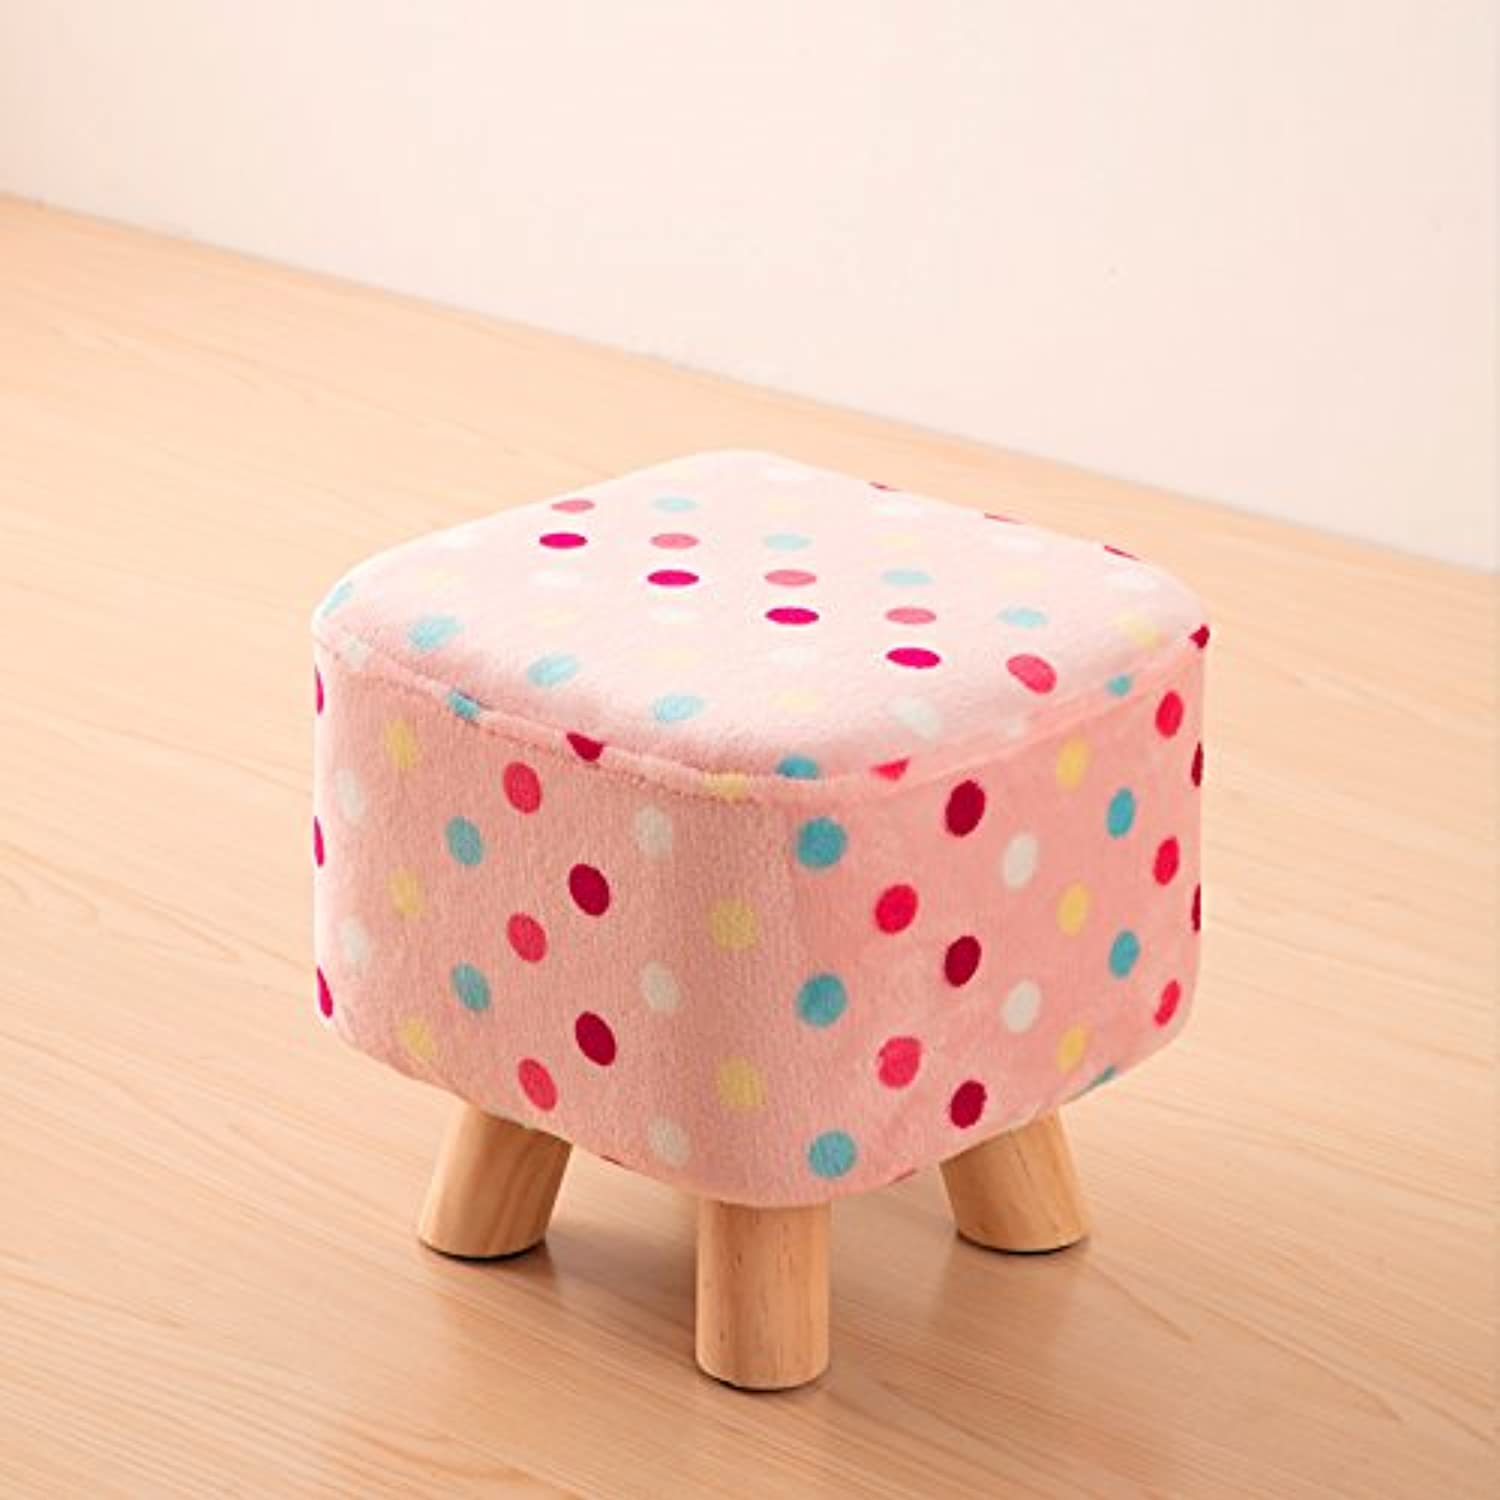 Dana Carrie Solid Wood on a Low stool for shoes is Fashionable to wear shoes That Creative Party Chair Fabrics stool Sofa Chair Coffee Table Bench Home, The end Point of The Toner color